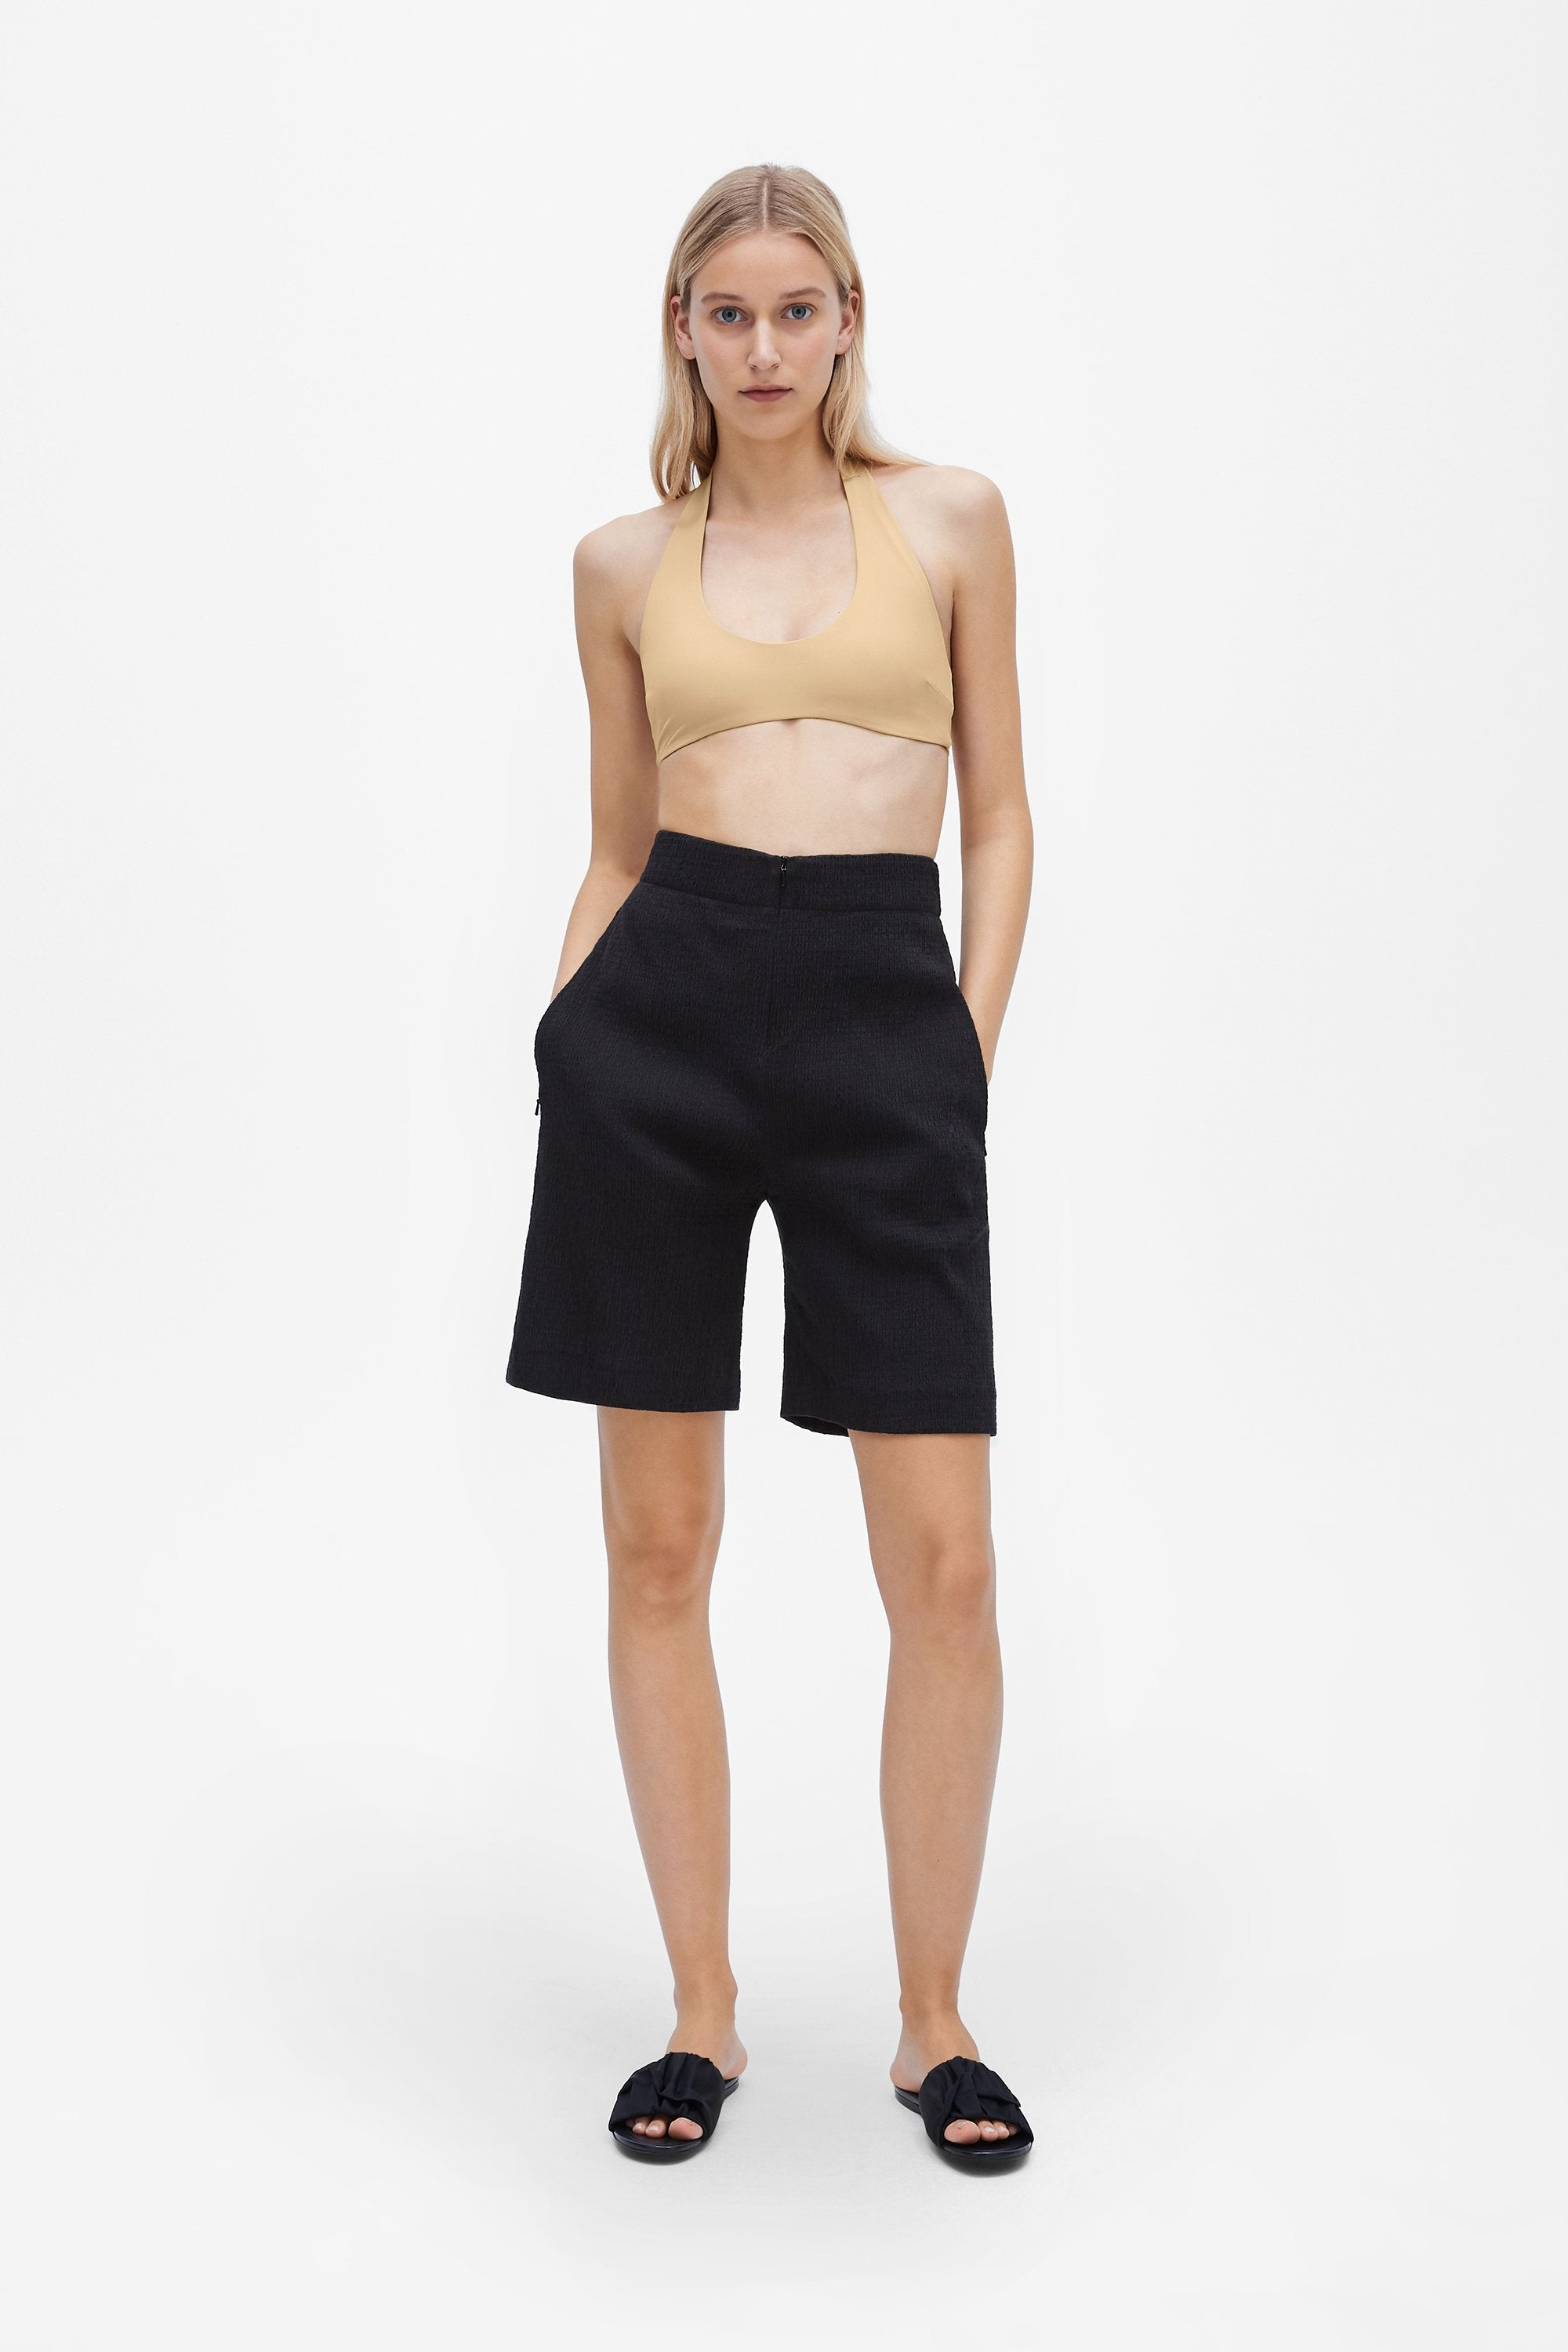 Invisible wide-leg shorts - Shirred voile - Black - Resortwear shorts - Her Line